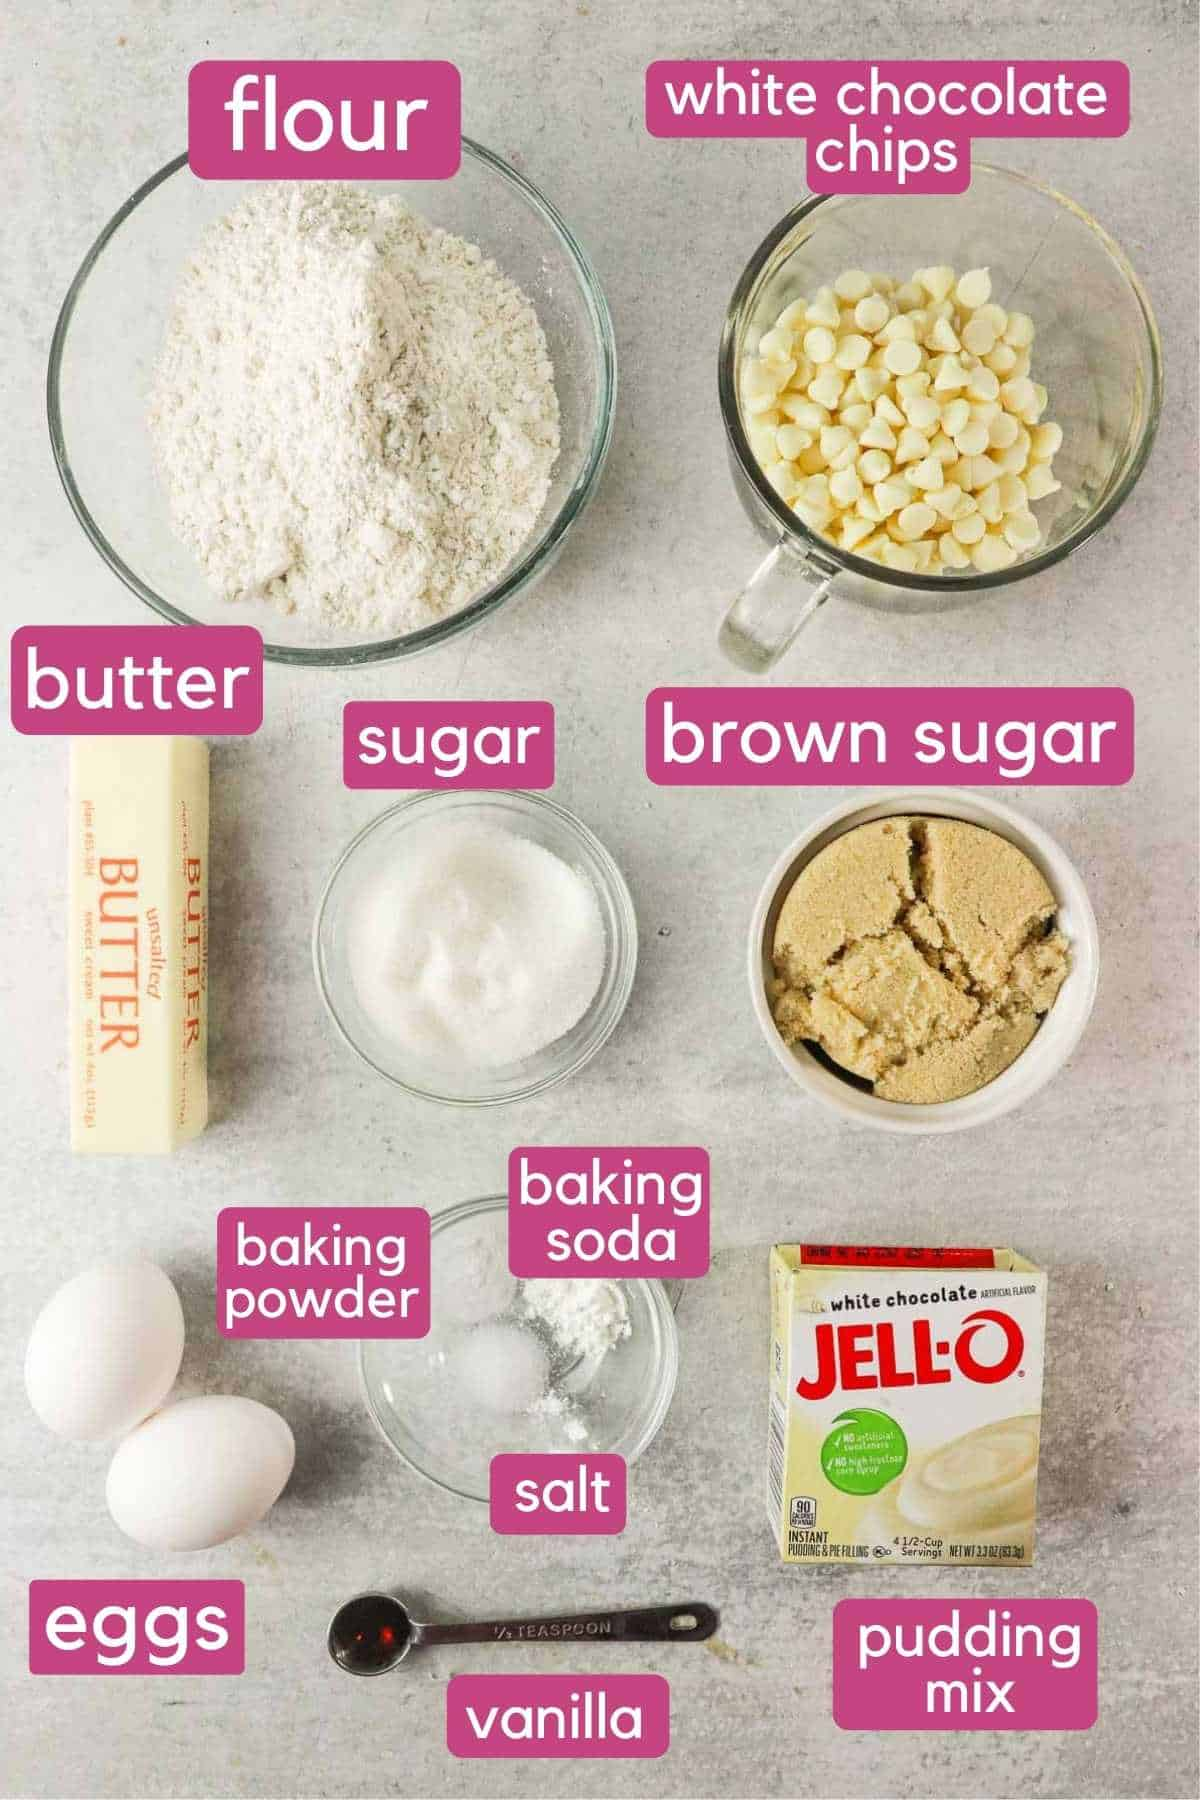 double white chocolate chip cookies ingredients.